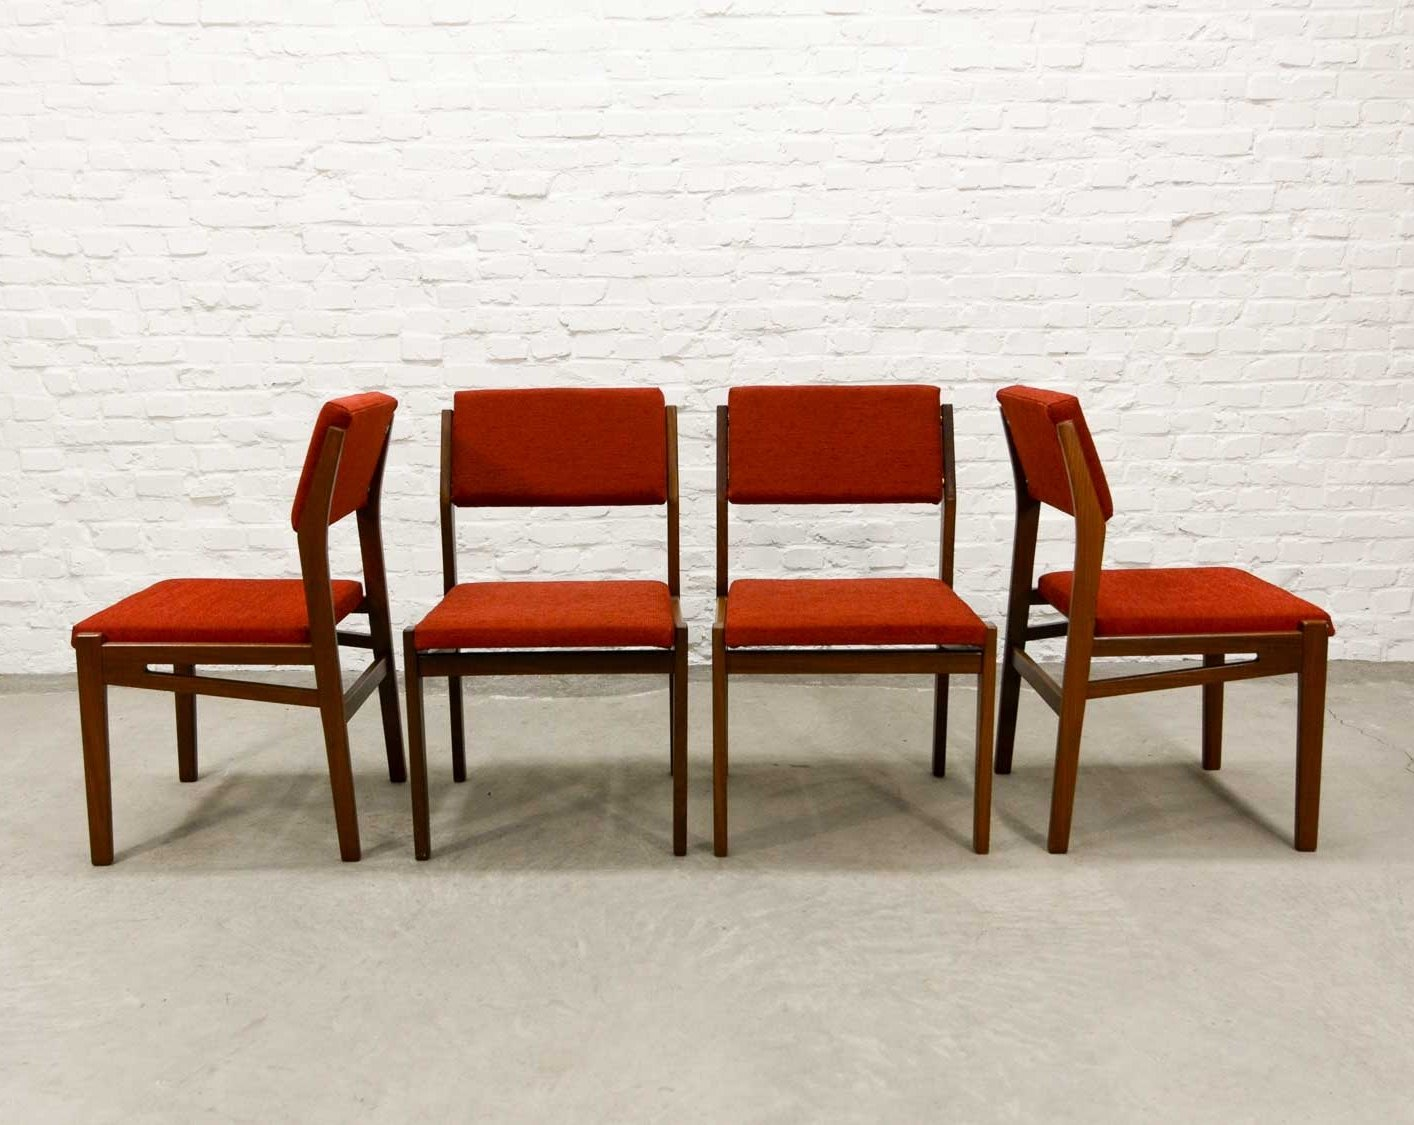 teak wood chairs. Set Of Four Teak Wood Stone Red Dining Chairs By Topform, 1960s